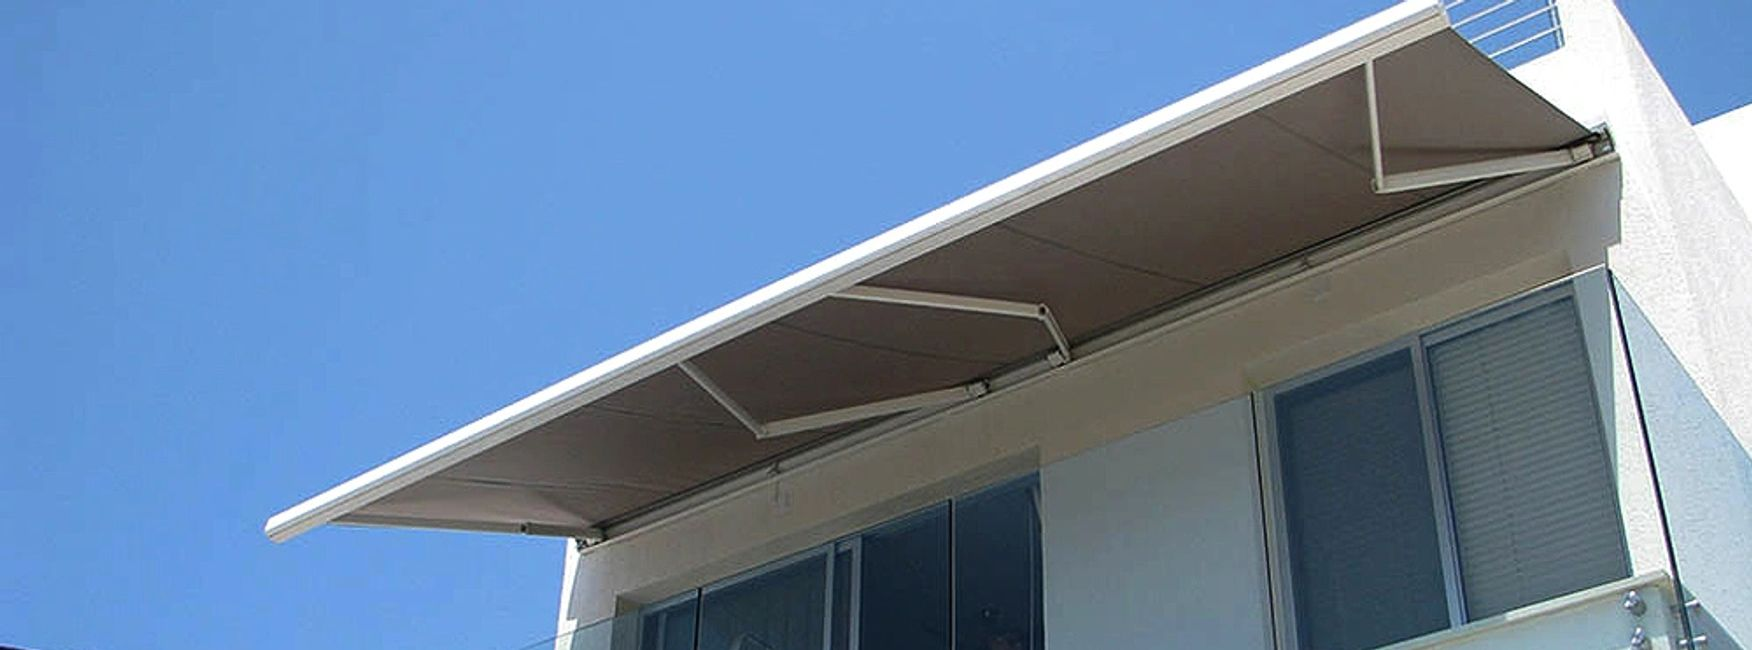 Retractable awnings for sun shade in Cyprus, by Shadeports Plus.